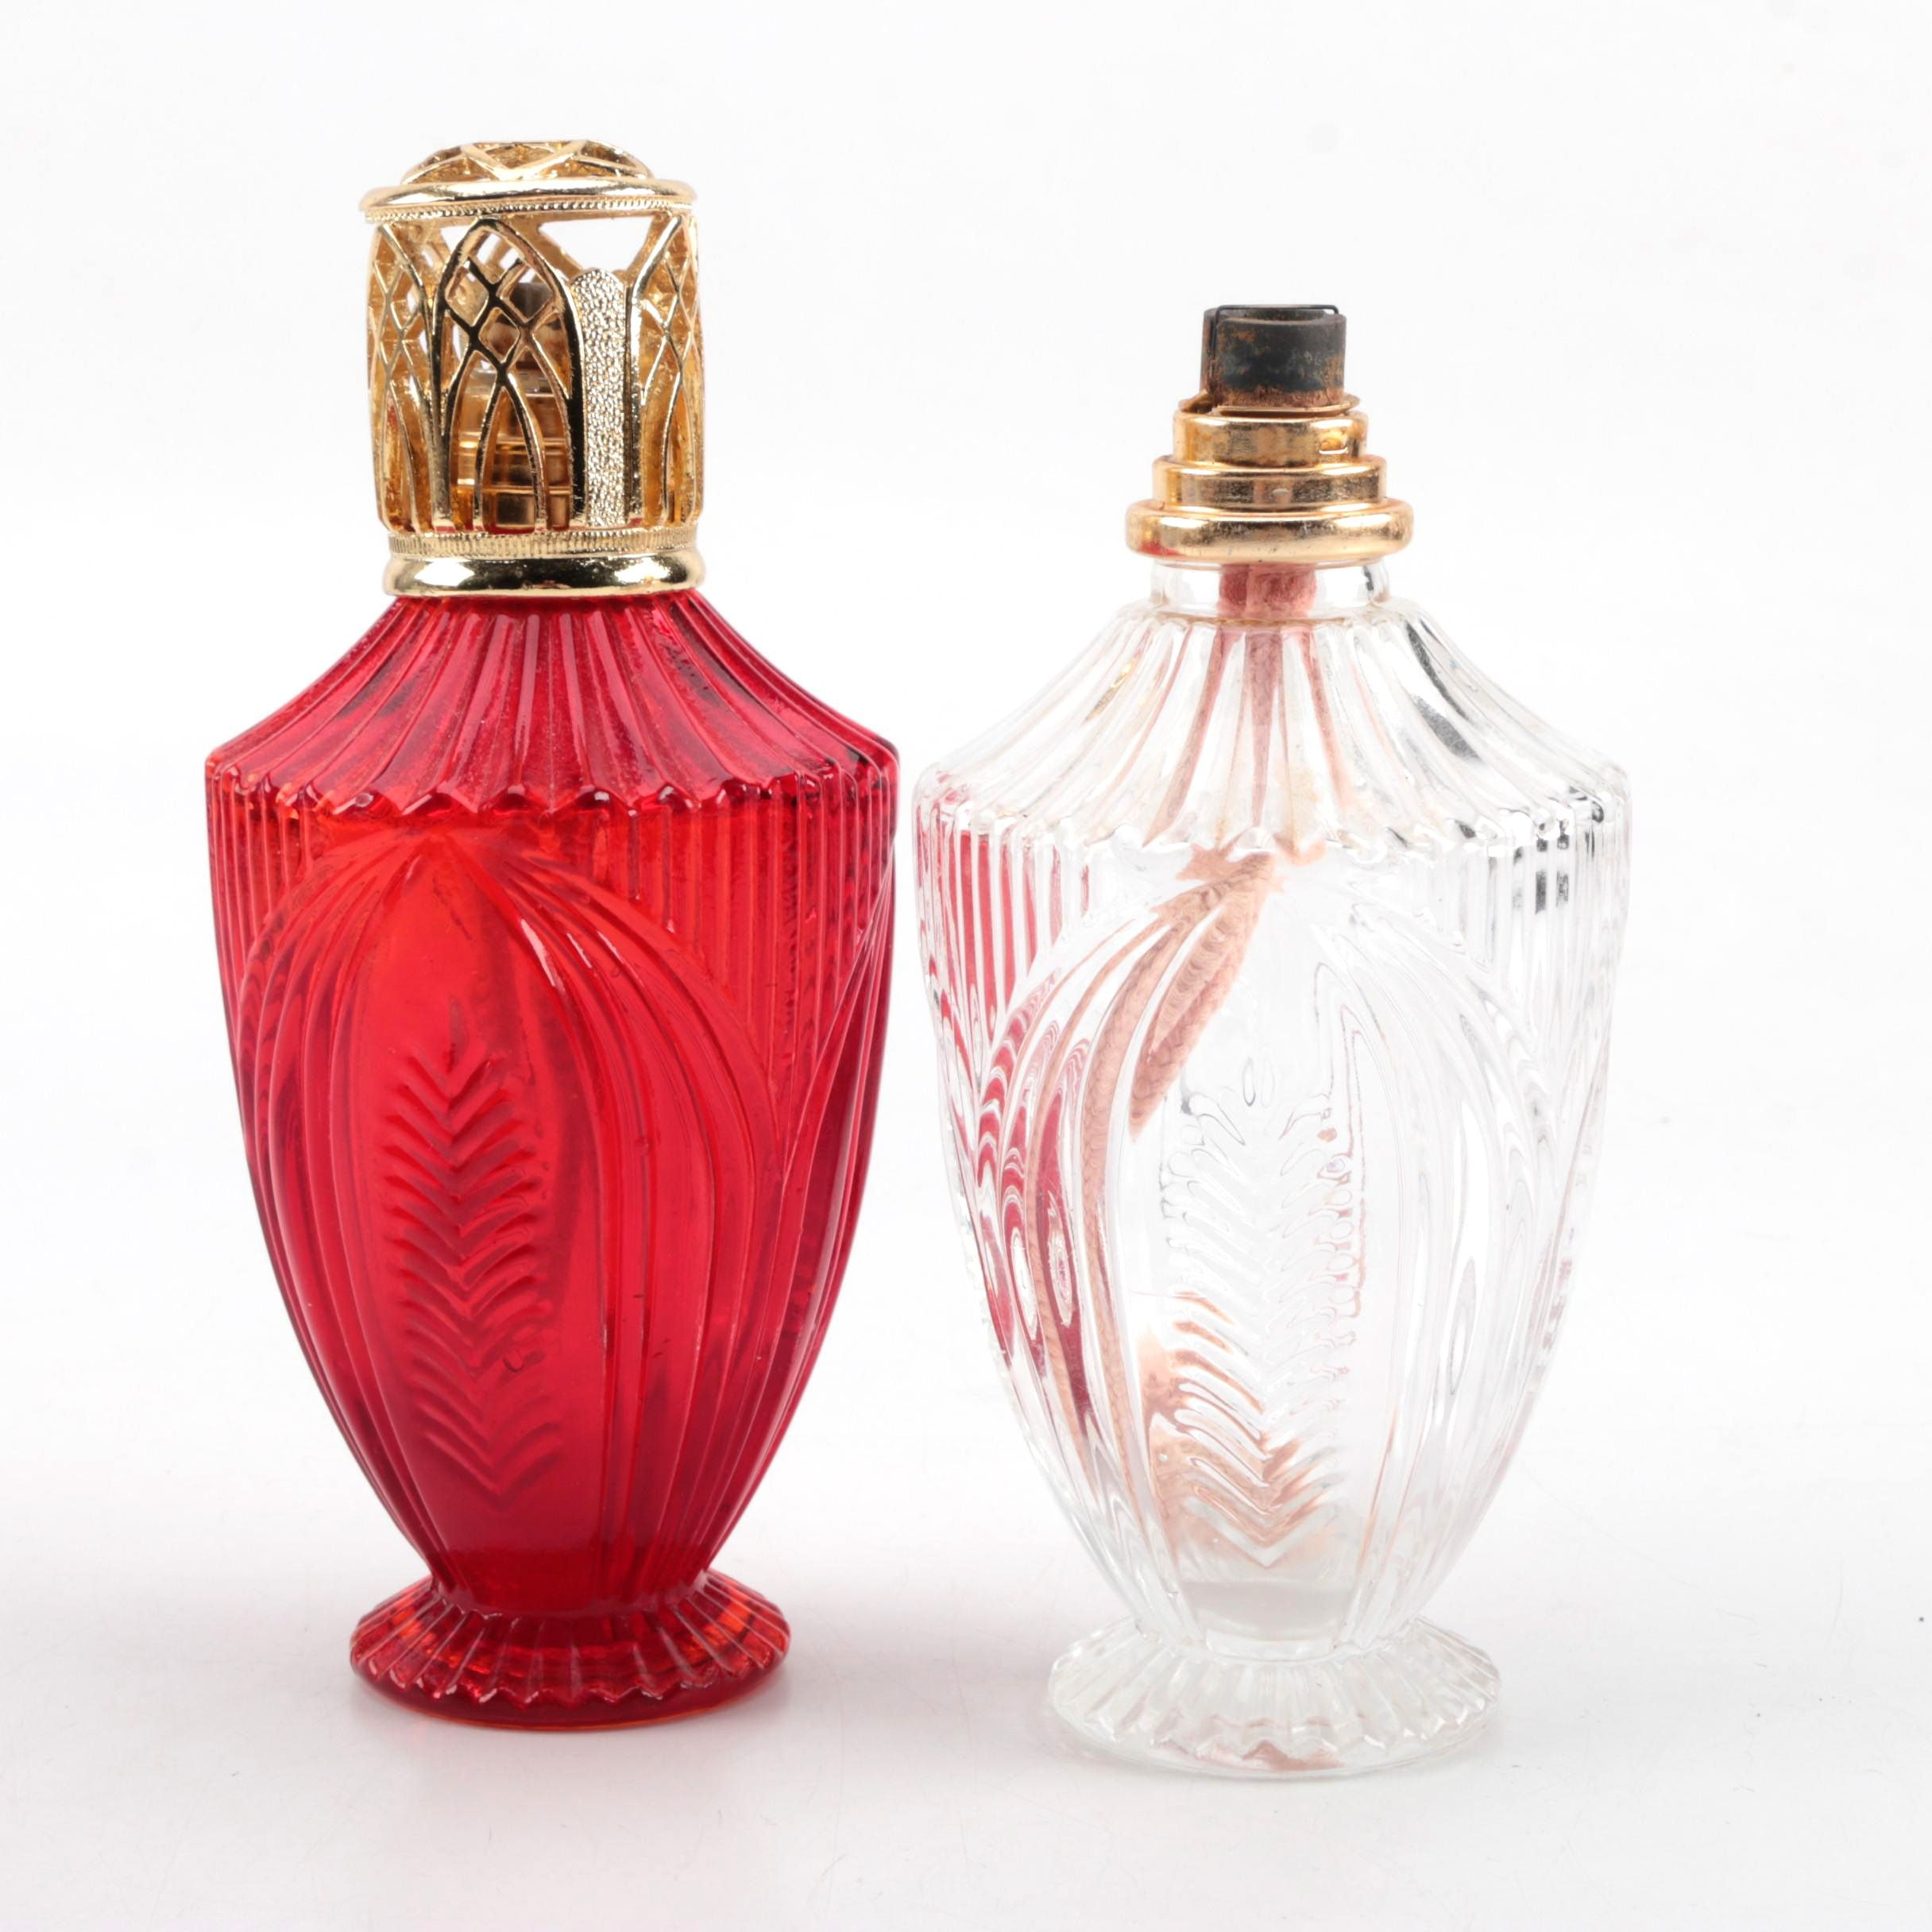 Pair of Pressed Glass Perfume Atomizers